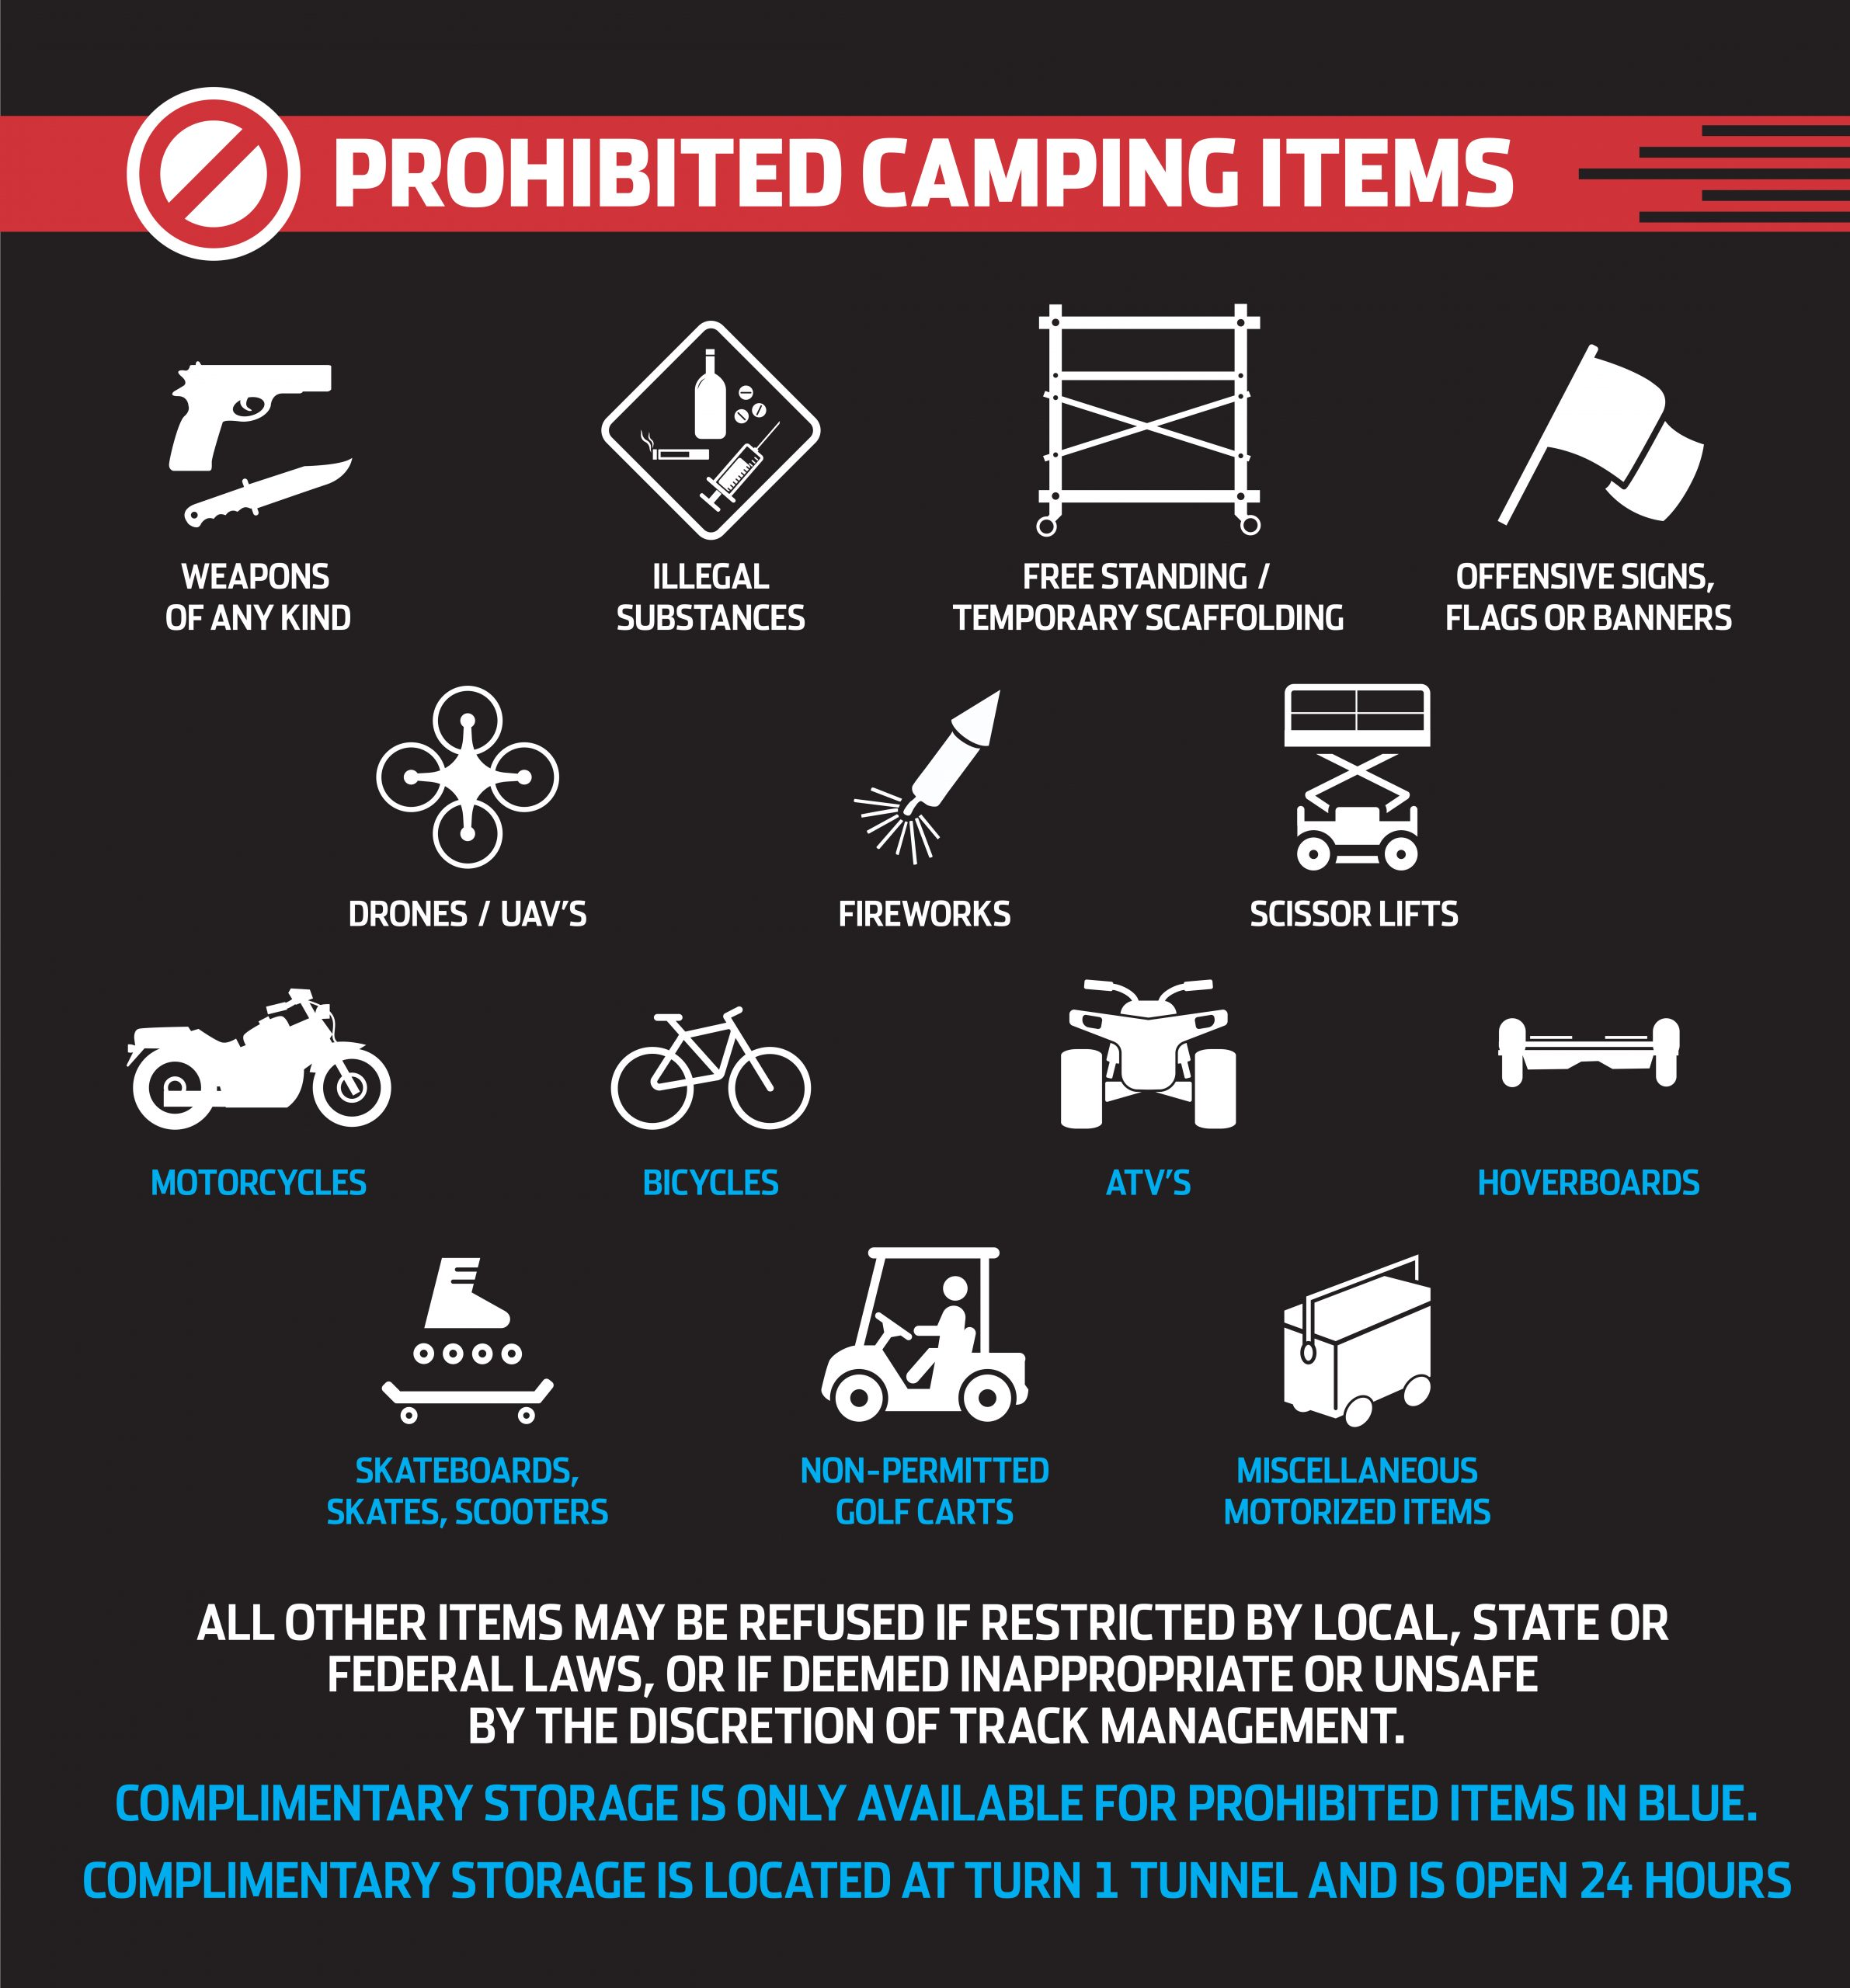 PROHIBITED CAMPING ITEMS